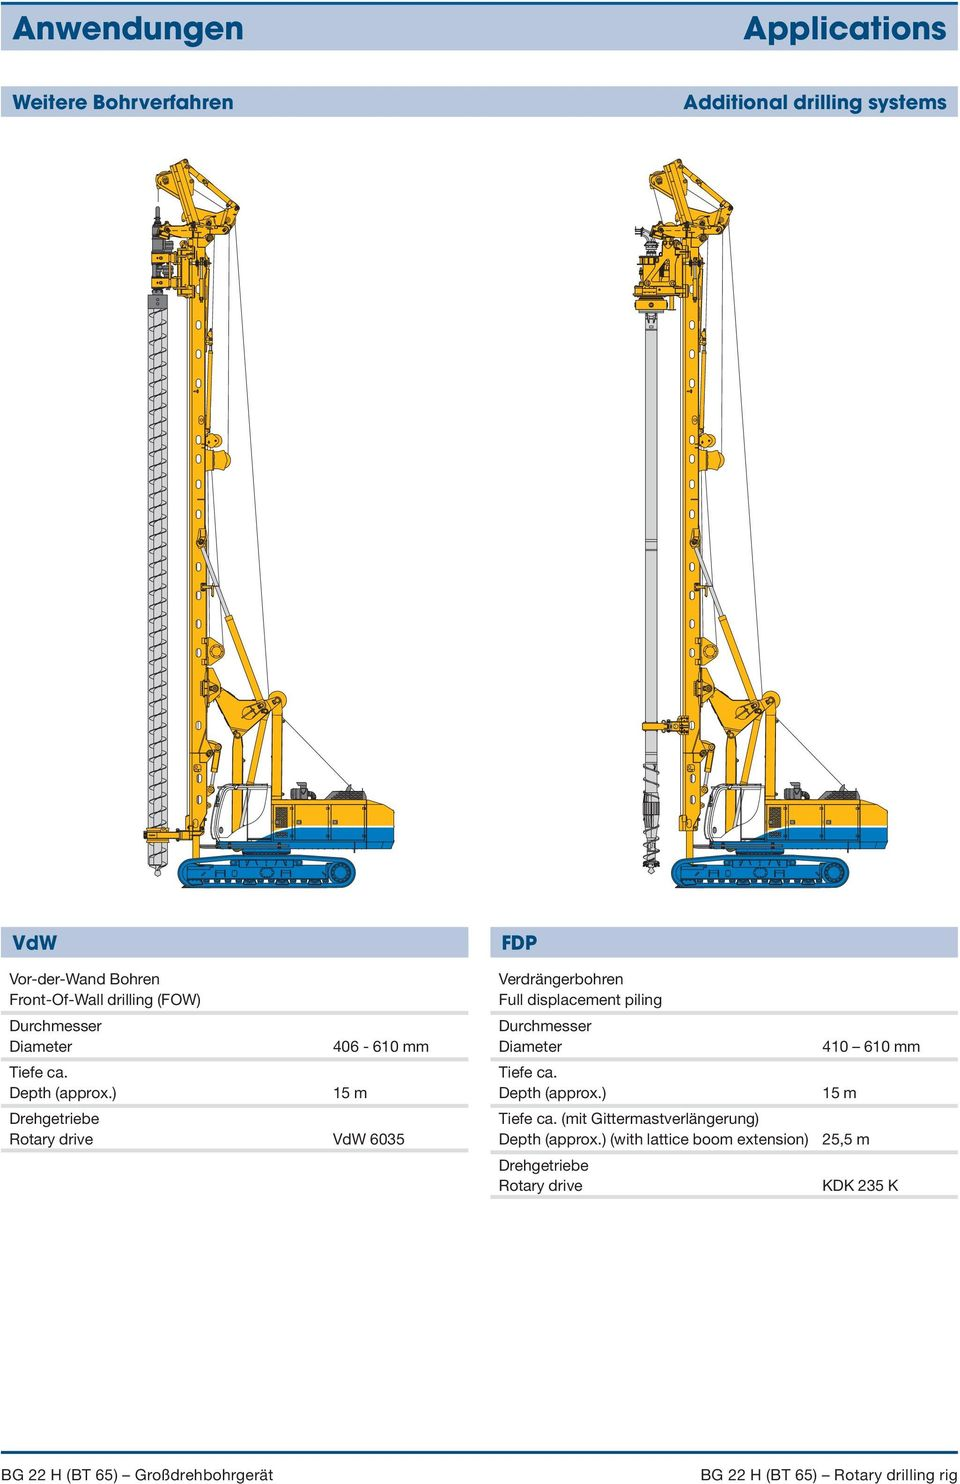 ) 15 m Drehgetriebe Rotary drive VdW 635 FDP Verdrängerbohren Full displacement piling Durchmesser Diameter Tiefe